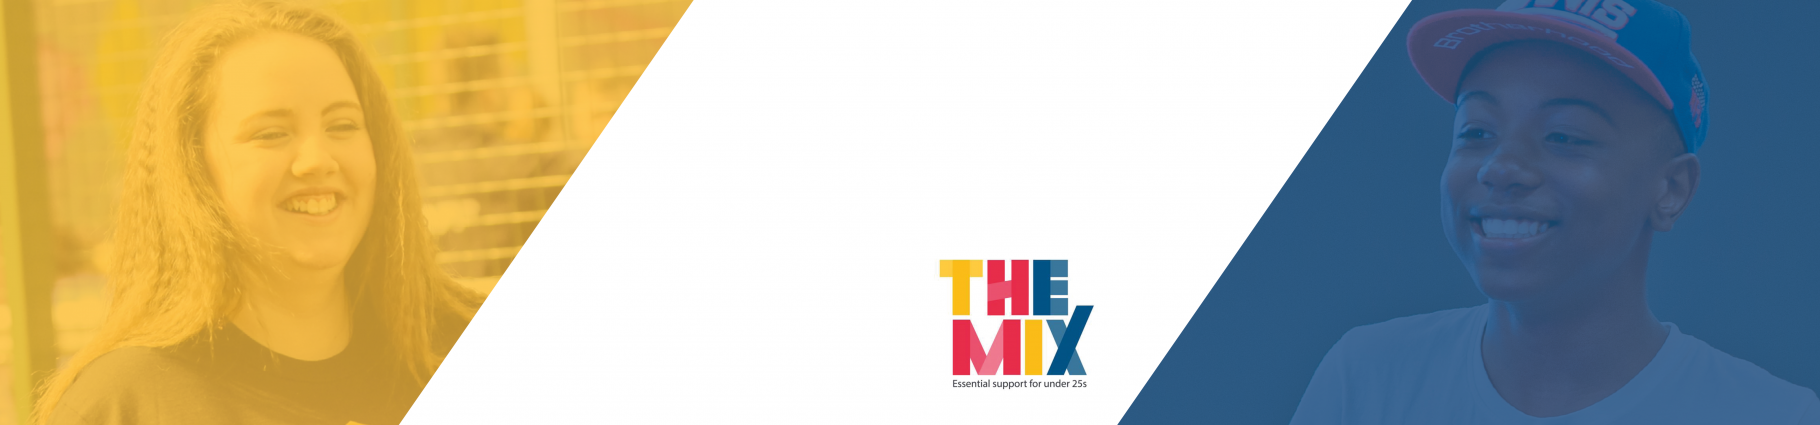 THE MIX HOMEPAGE BANNER